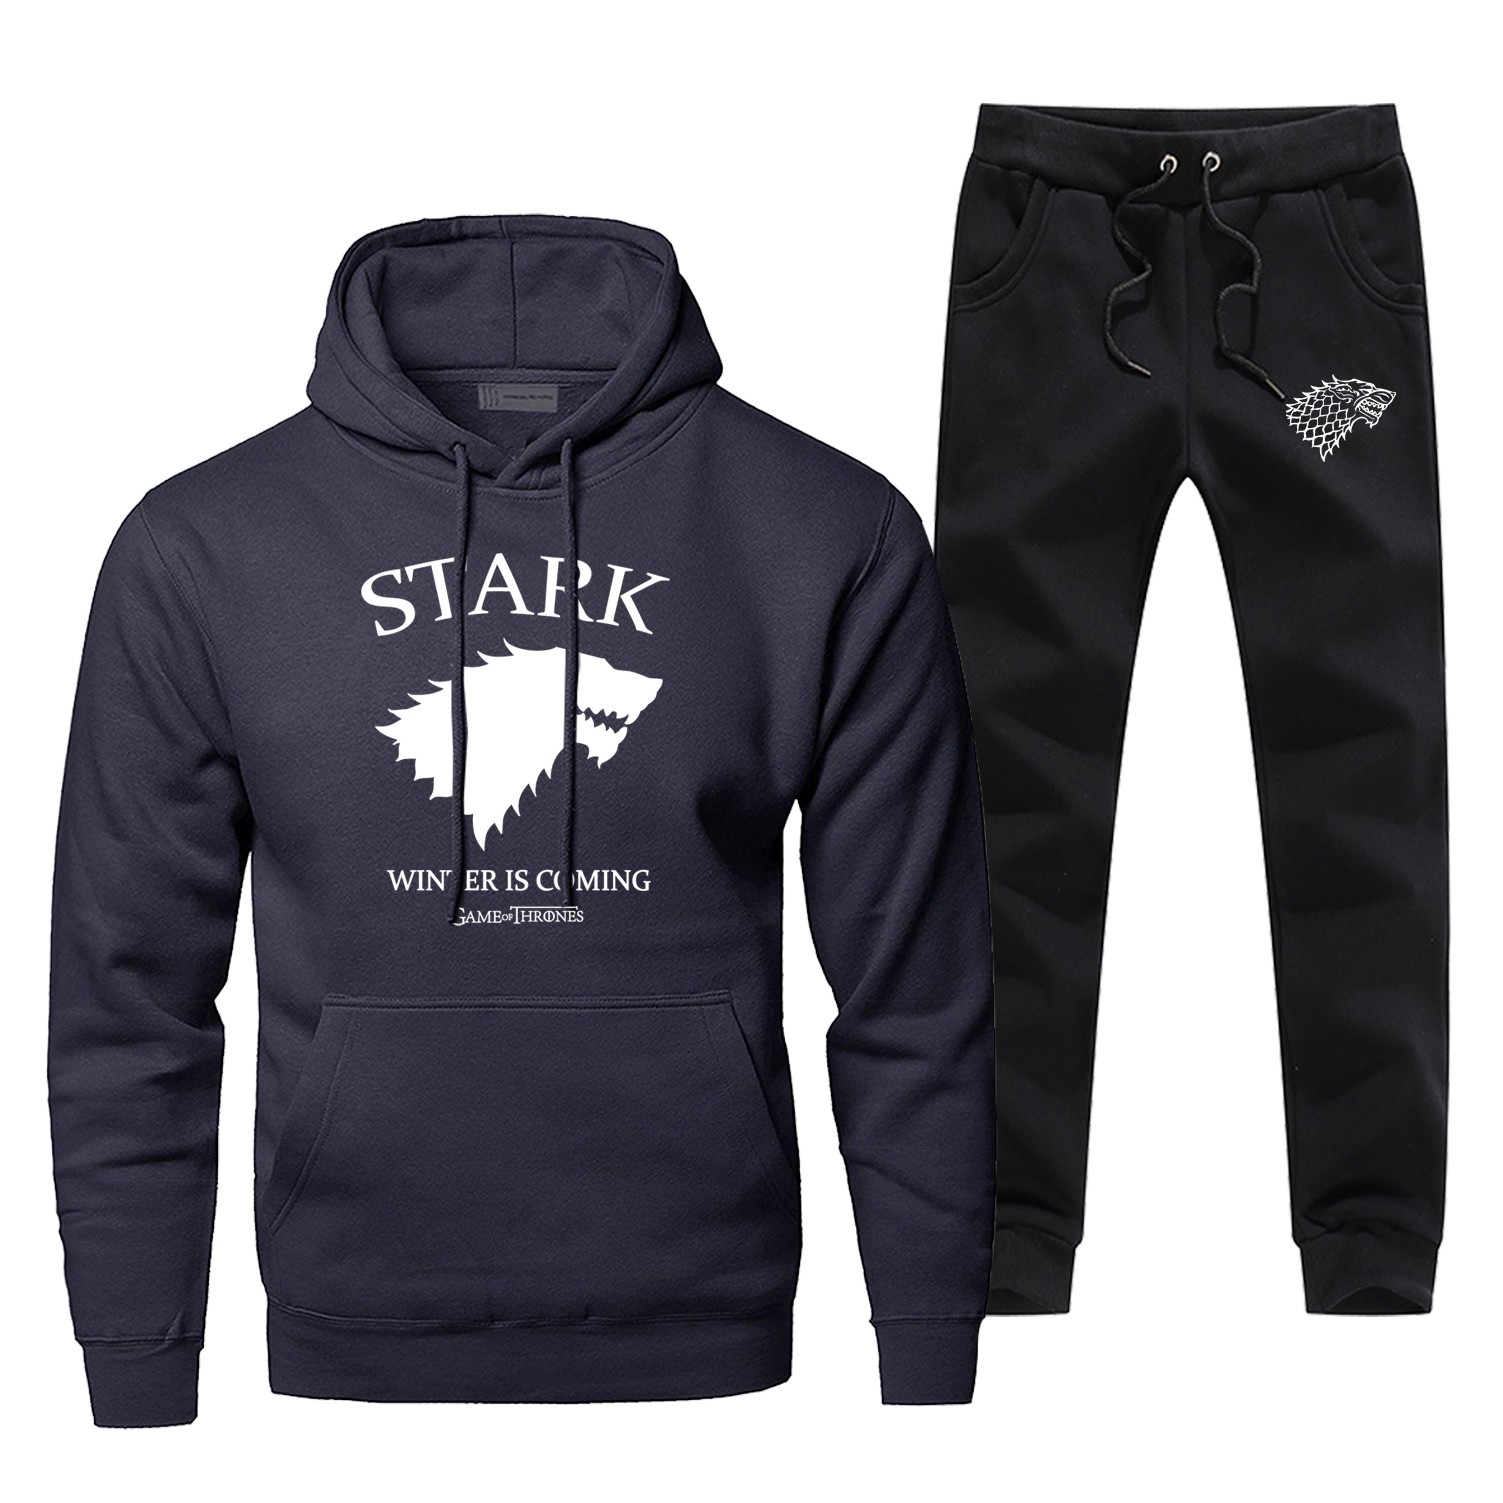 Game Of Thrones Sweatshirt House Stark The Song Of Ice And Fire Winter Is Coming Men's Hoodies Pants Sets Sportswear Sweatpants